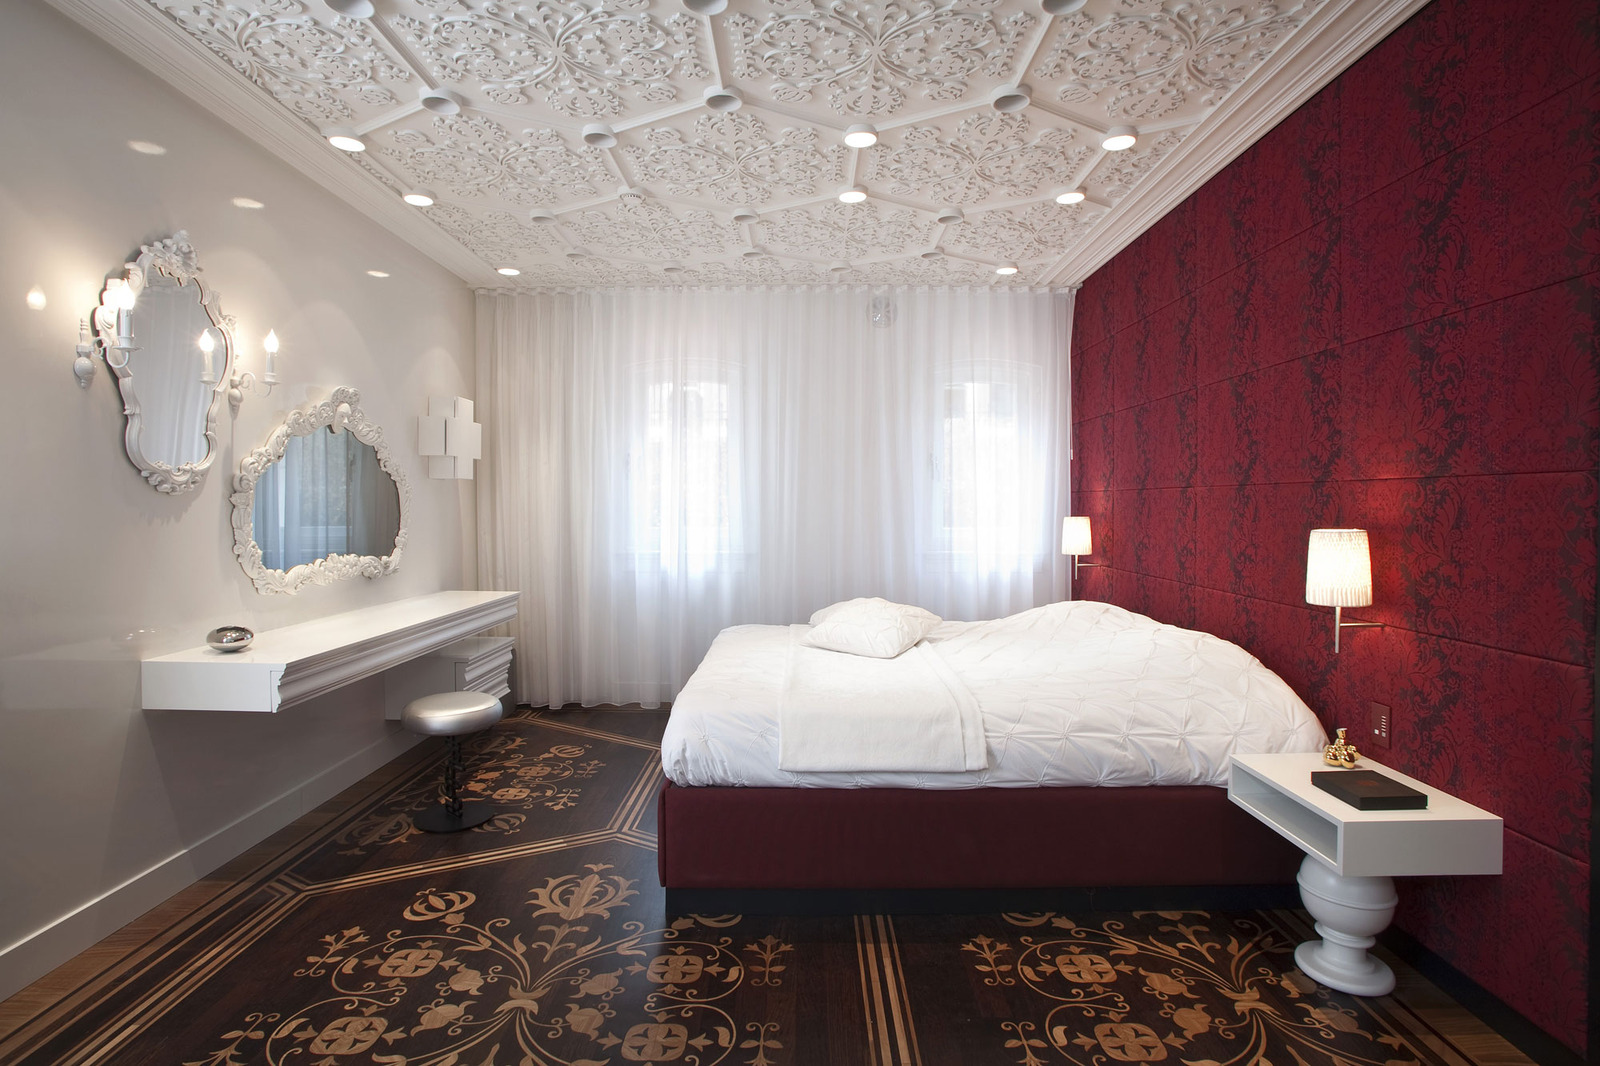 Home full of Textures and Patterns creates a Visceral Experience Bedroom Home Interior Design Texture on home interior design wallpaper, home interior design styles, home interior design sketch, home interior design layout, home interior design colors,